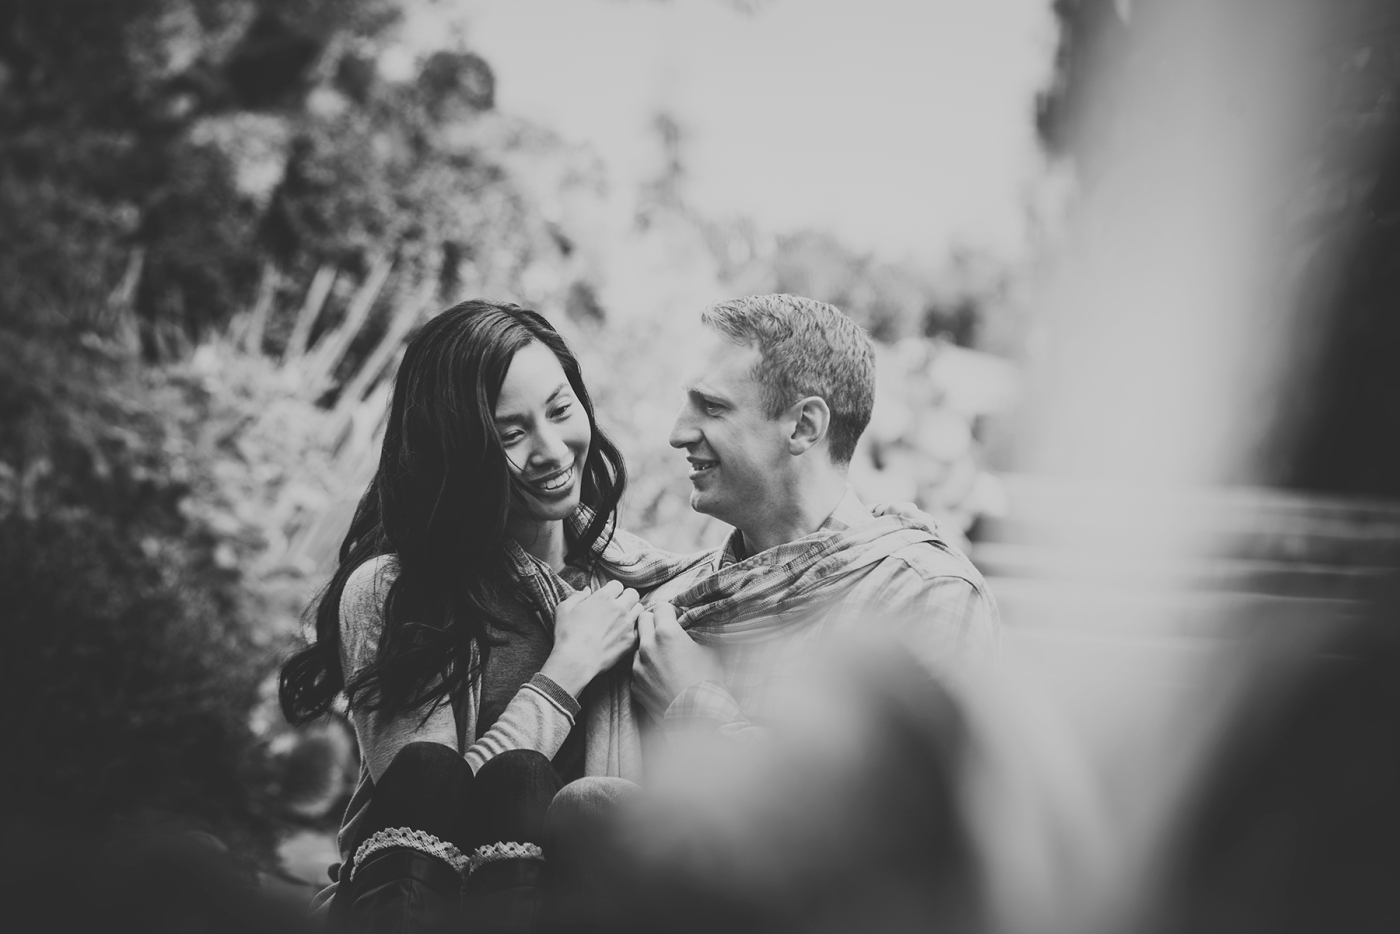 jane-speleers-photography-ju-bri-holiday-october-bellevue-botanical-garden-engagement-2016_dsc_5656